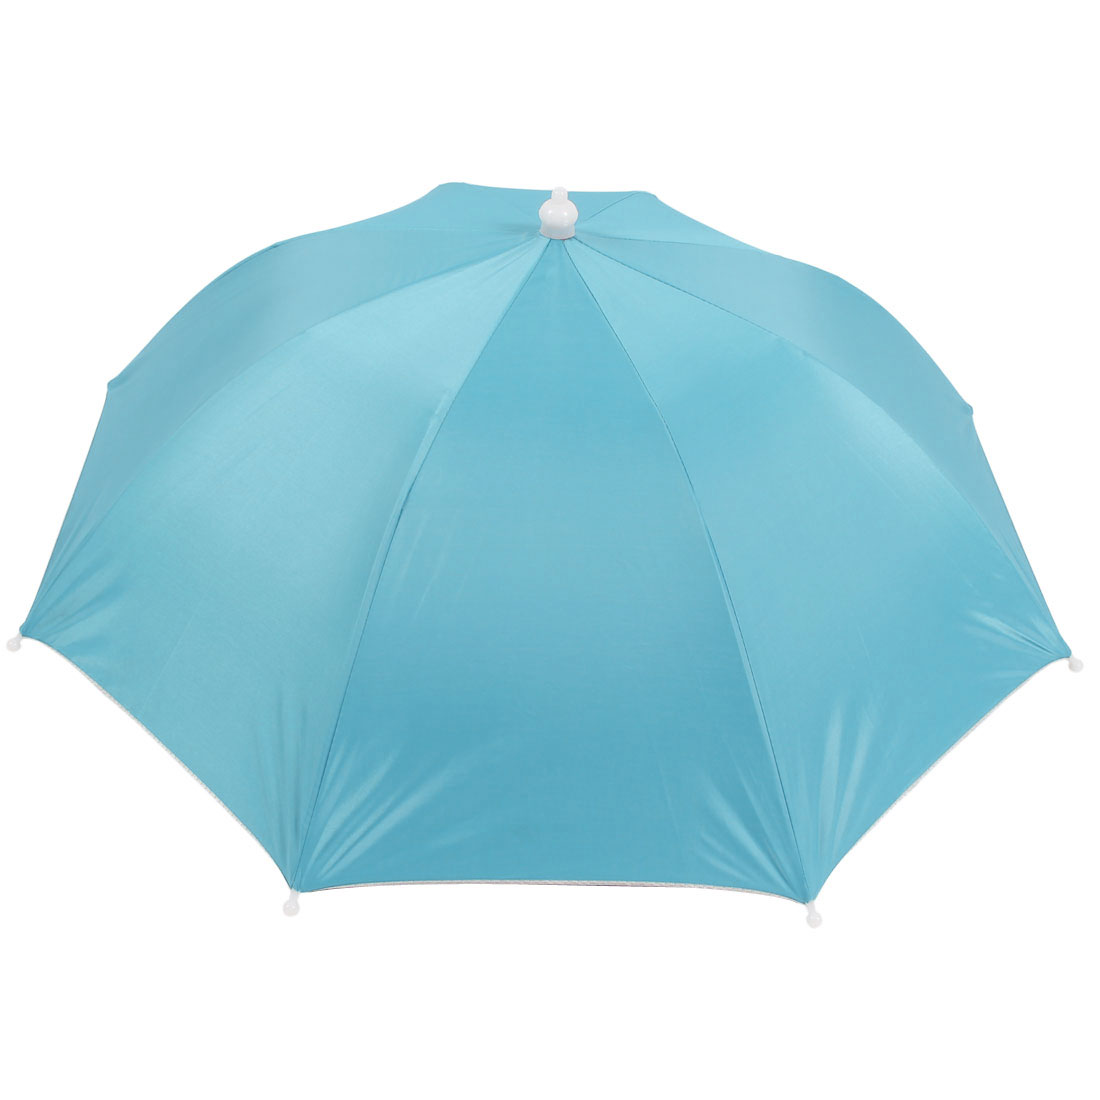 Steel Blue Silver Tone 8 Ribs Fishing Golfing Sun Rain Umbrella Hat Cap